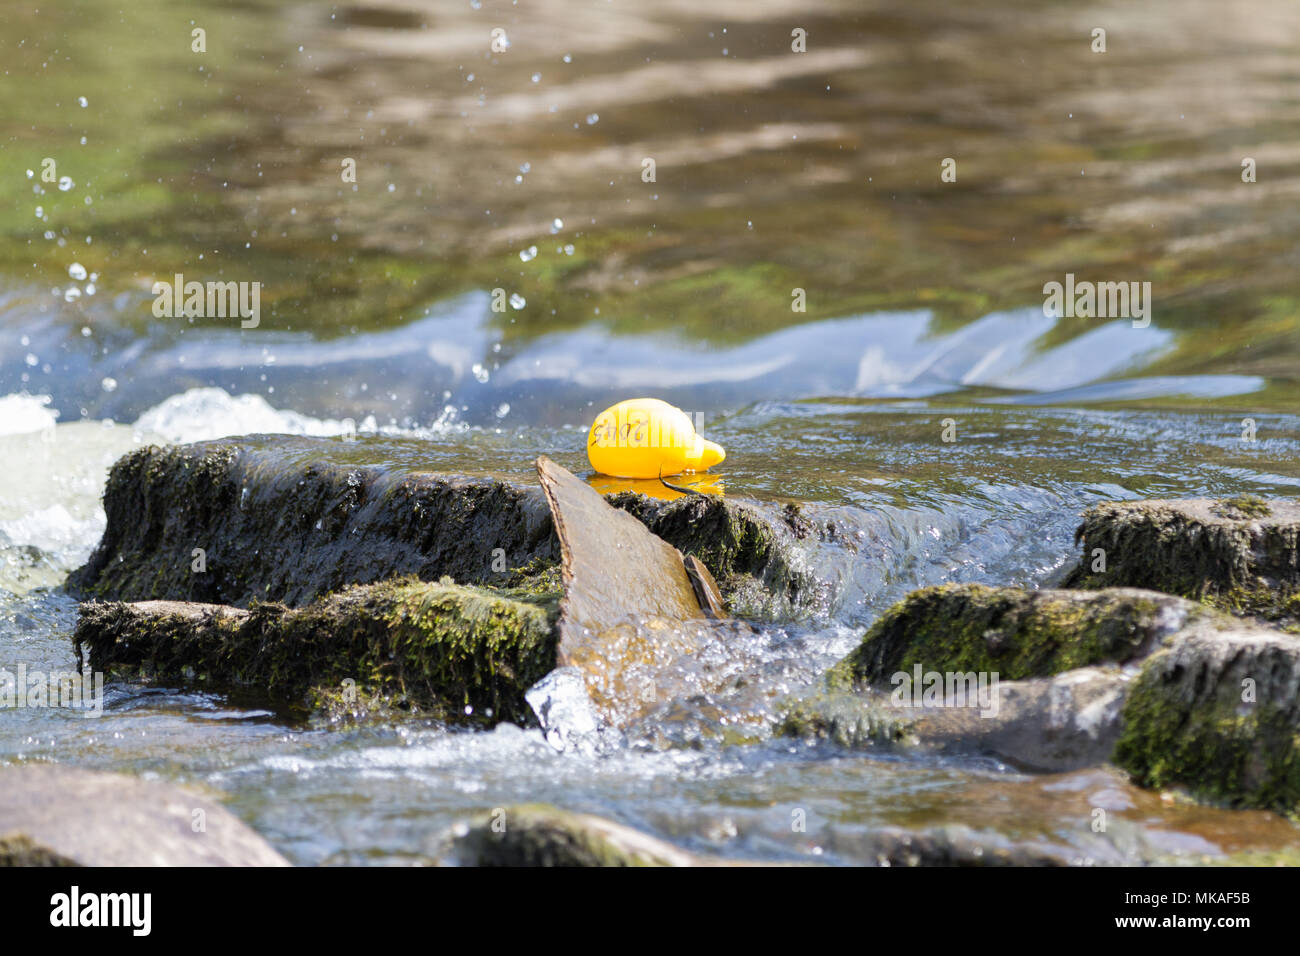 Richmond, North Yorkshire, UK. Monday 7th May, 2018. Organised by Richmond Duck Club, the Grand Duck Race takes place annually on May Day bank holiday and sees 2500 plastic ducks tipped into the River Swale from the Green Bridge from where they float downstream, over the waterfalls to the finishing line at the Batts near the Station Bridge. Credit: Andrew Nicholson/Alamy Live News - Stock Image